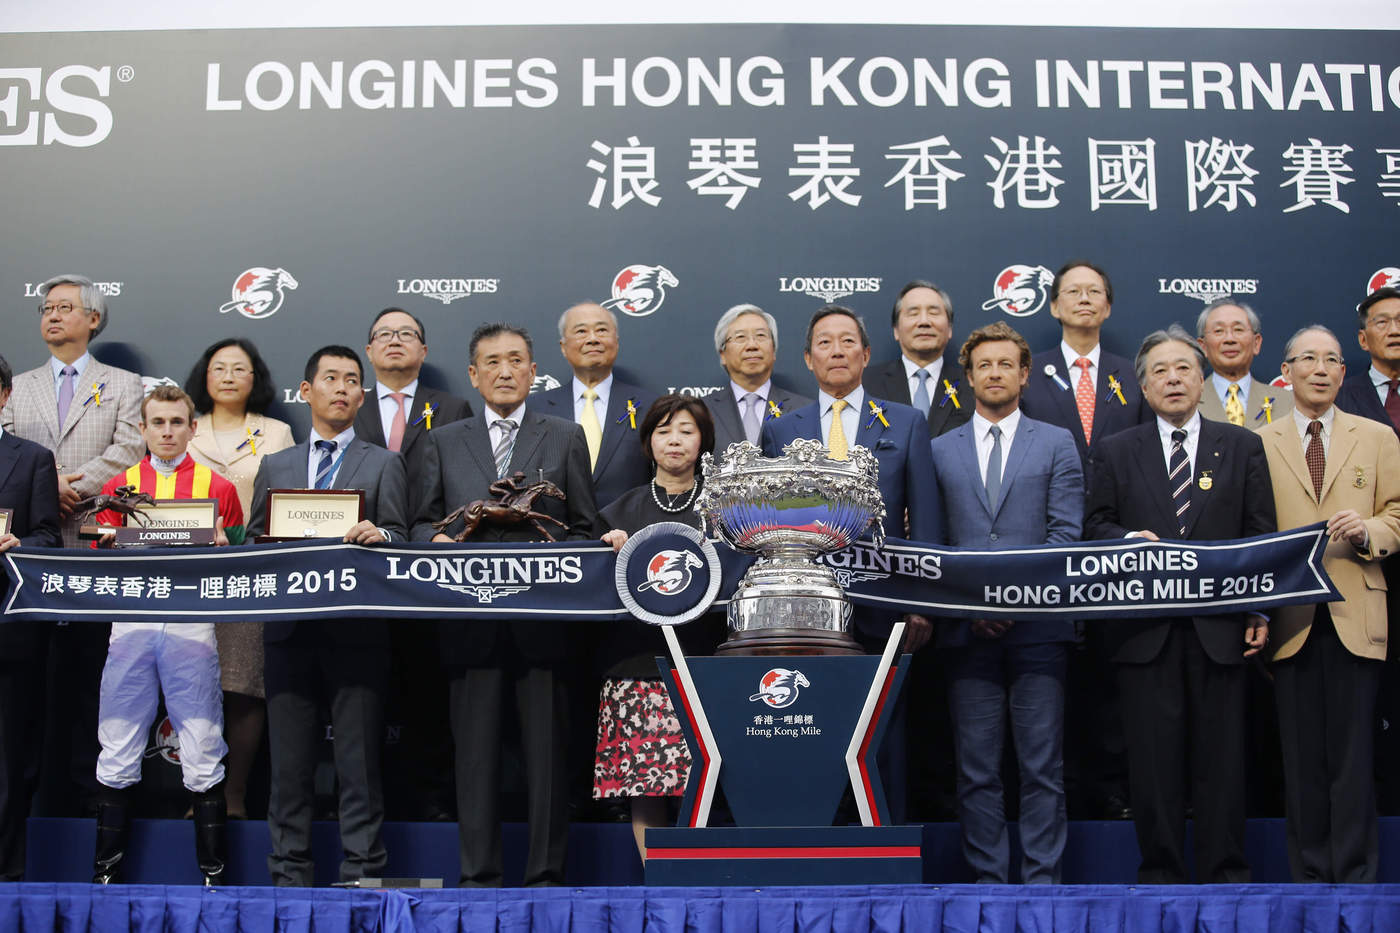 Longines Flat Racing Event: Longines Hong Kong International Races – a competitive climax of the horse racing calendar 9